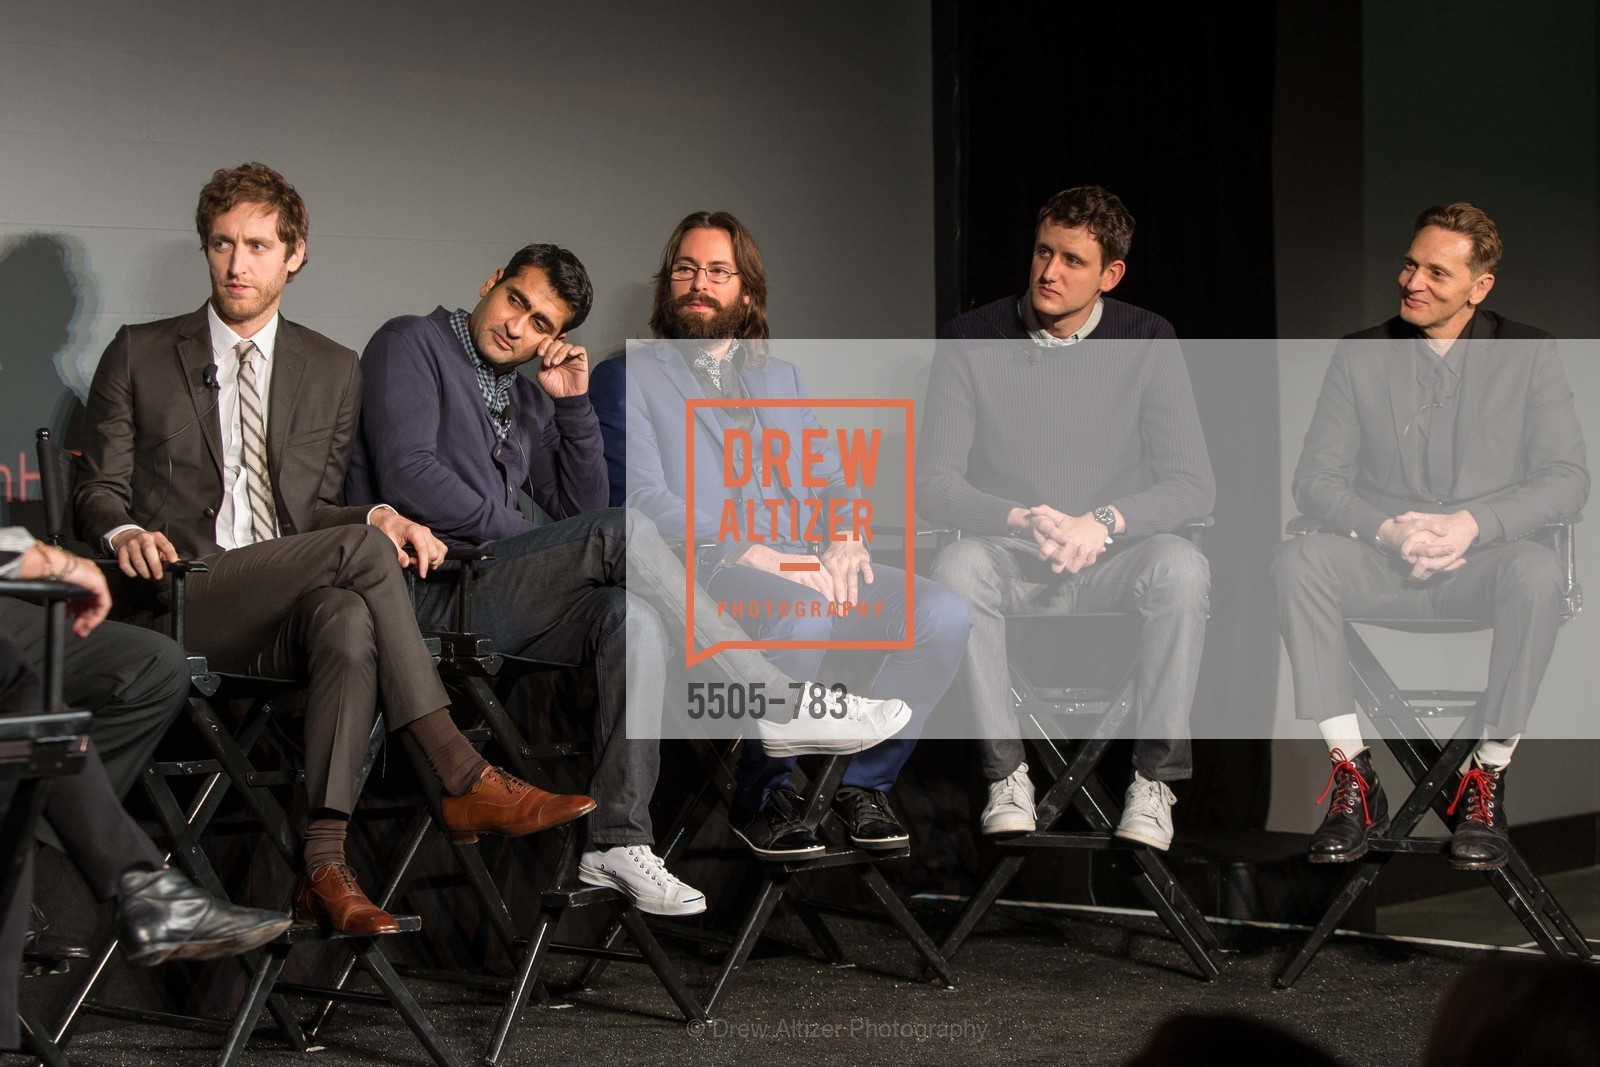 Thomas Middleditch, Kumail Nanjiani, Martin Starr, Zach Woods, Matt Ross, HBO'S SILICON VALLEY San Francisco Screening, US, April 9th, 2015,Drew Altizer, Drew Altizer Photography, full-service agency, private events, San Francisco photographer, photographer california